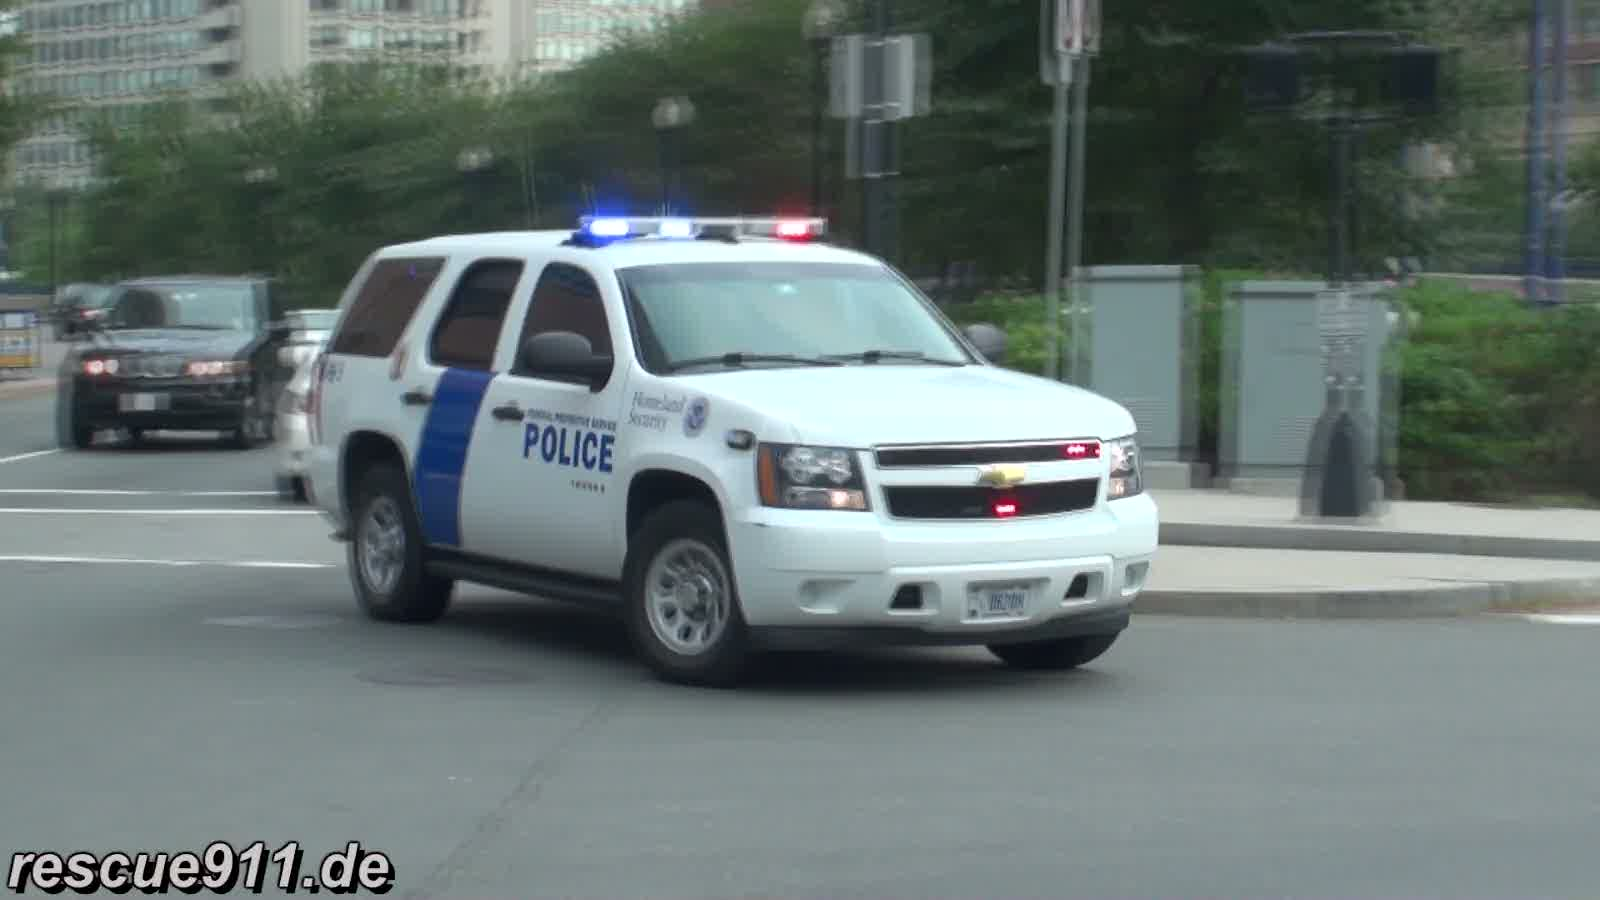 2x SUV Homeland Security + Police car Massachusetts State Police (stream)